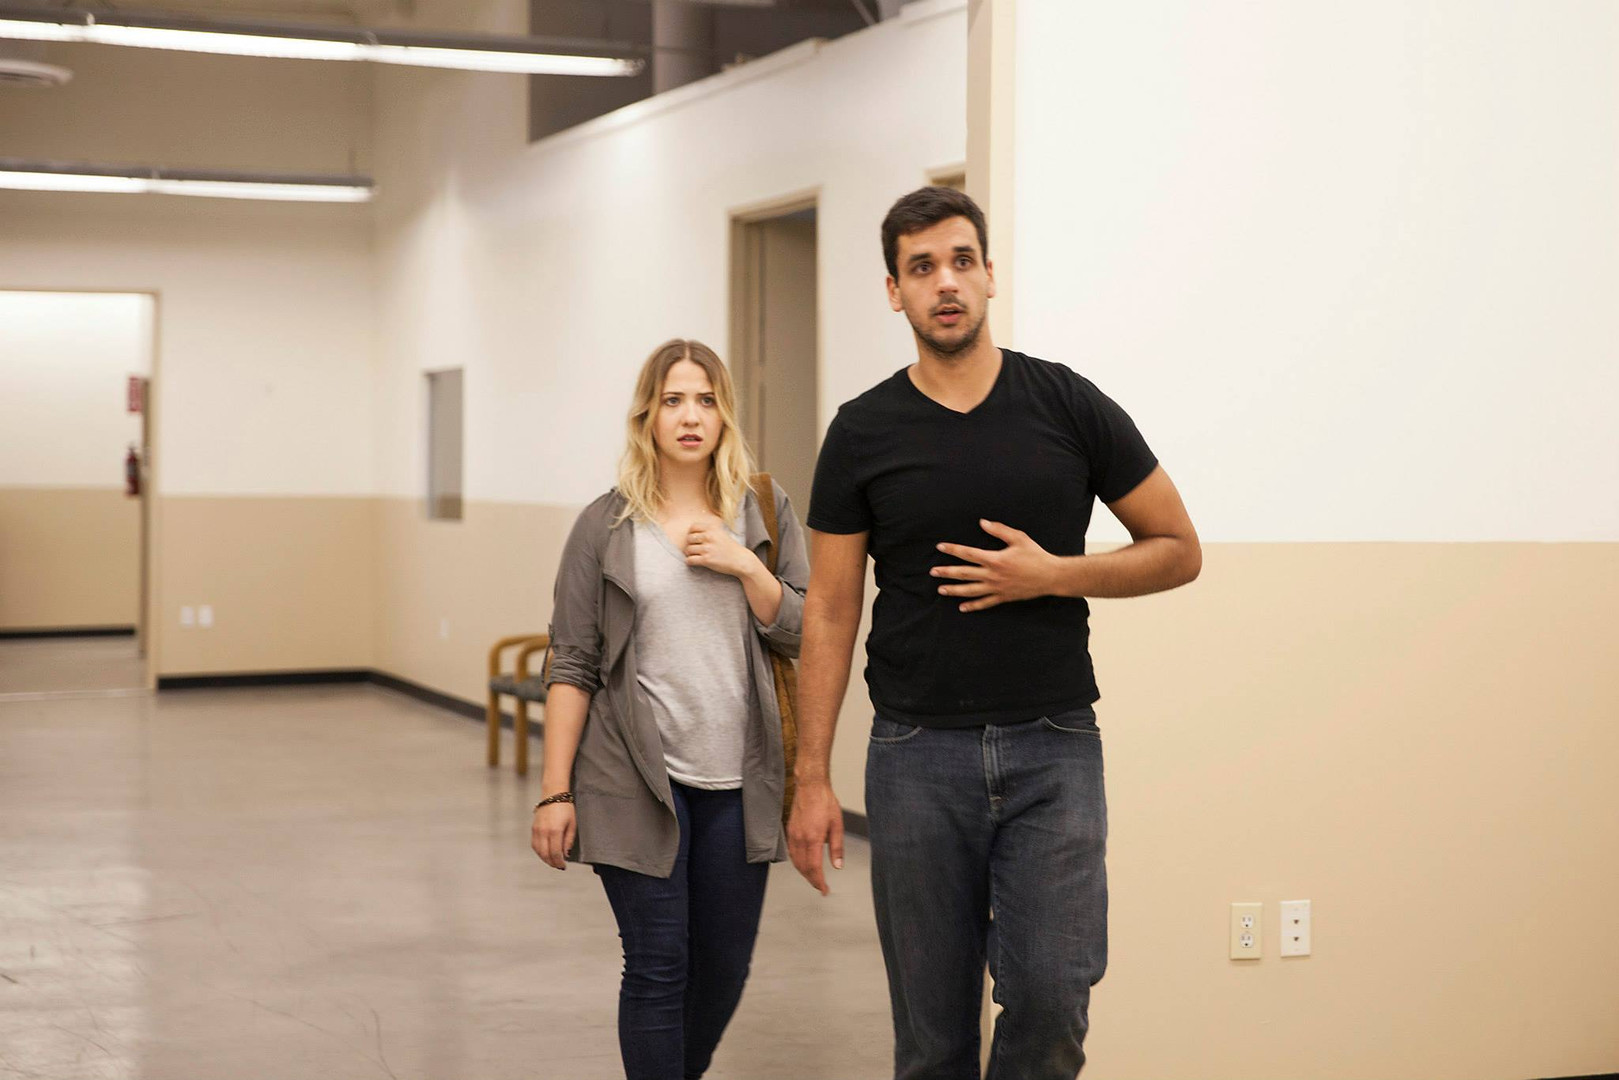 Lead actress Haley Alea Erickson and Writer/Director Nate Hapke on set.